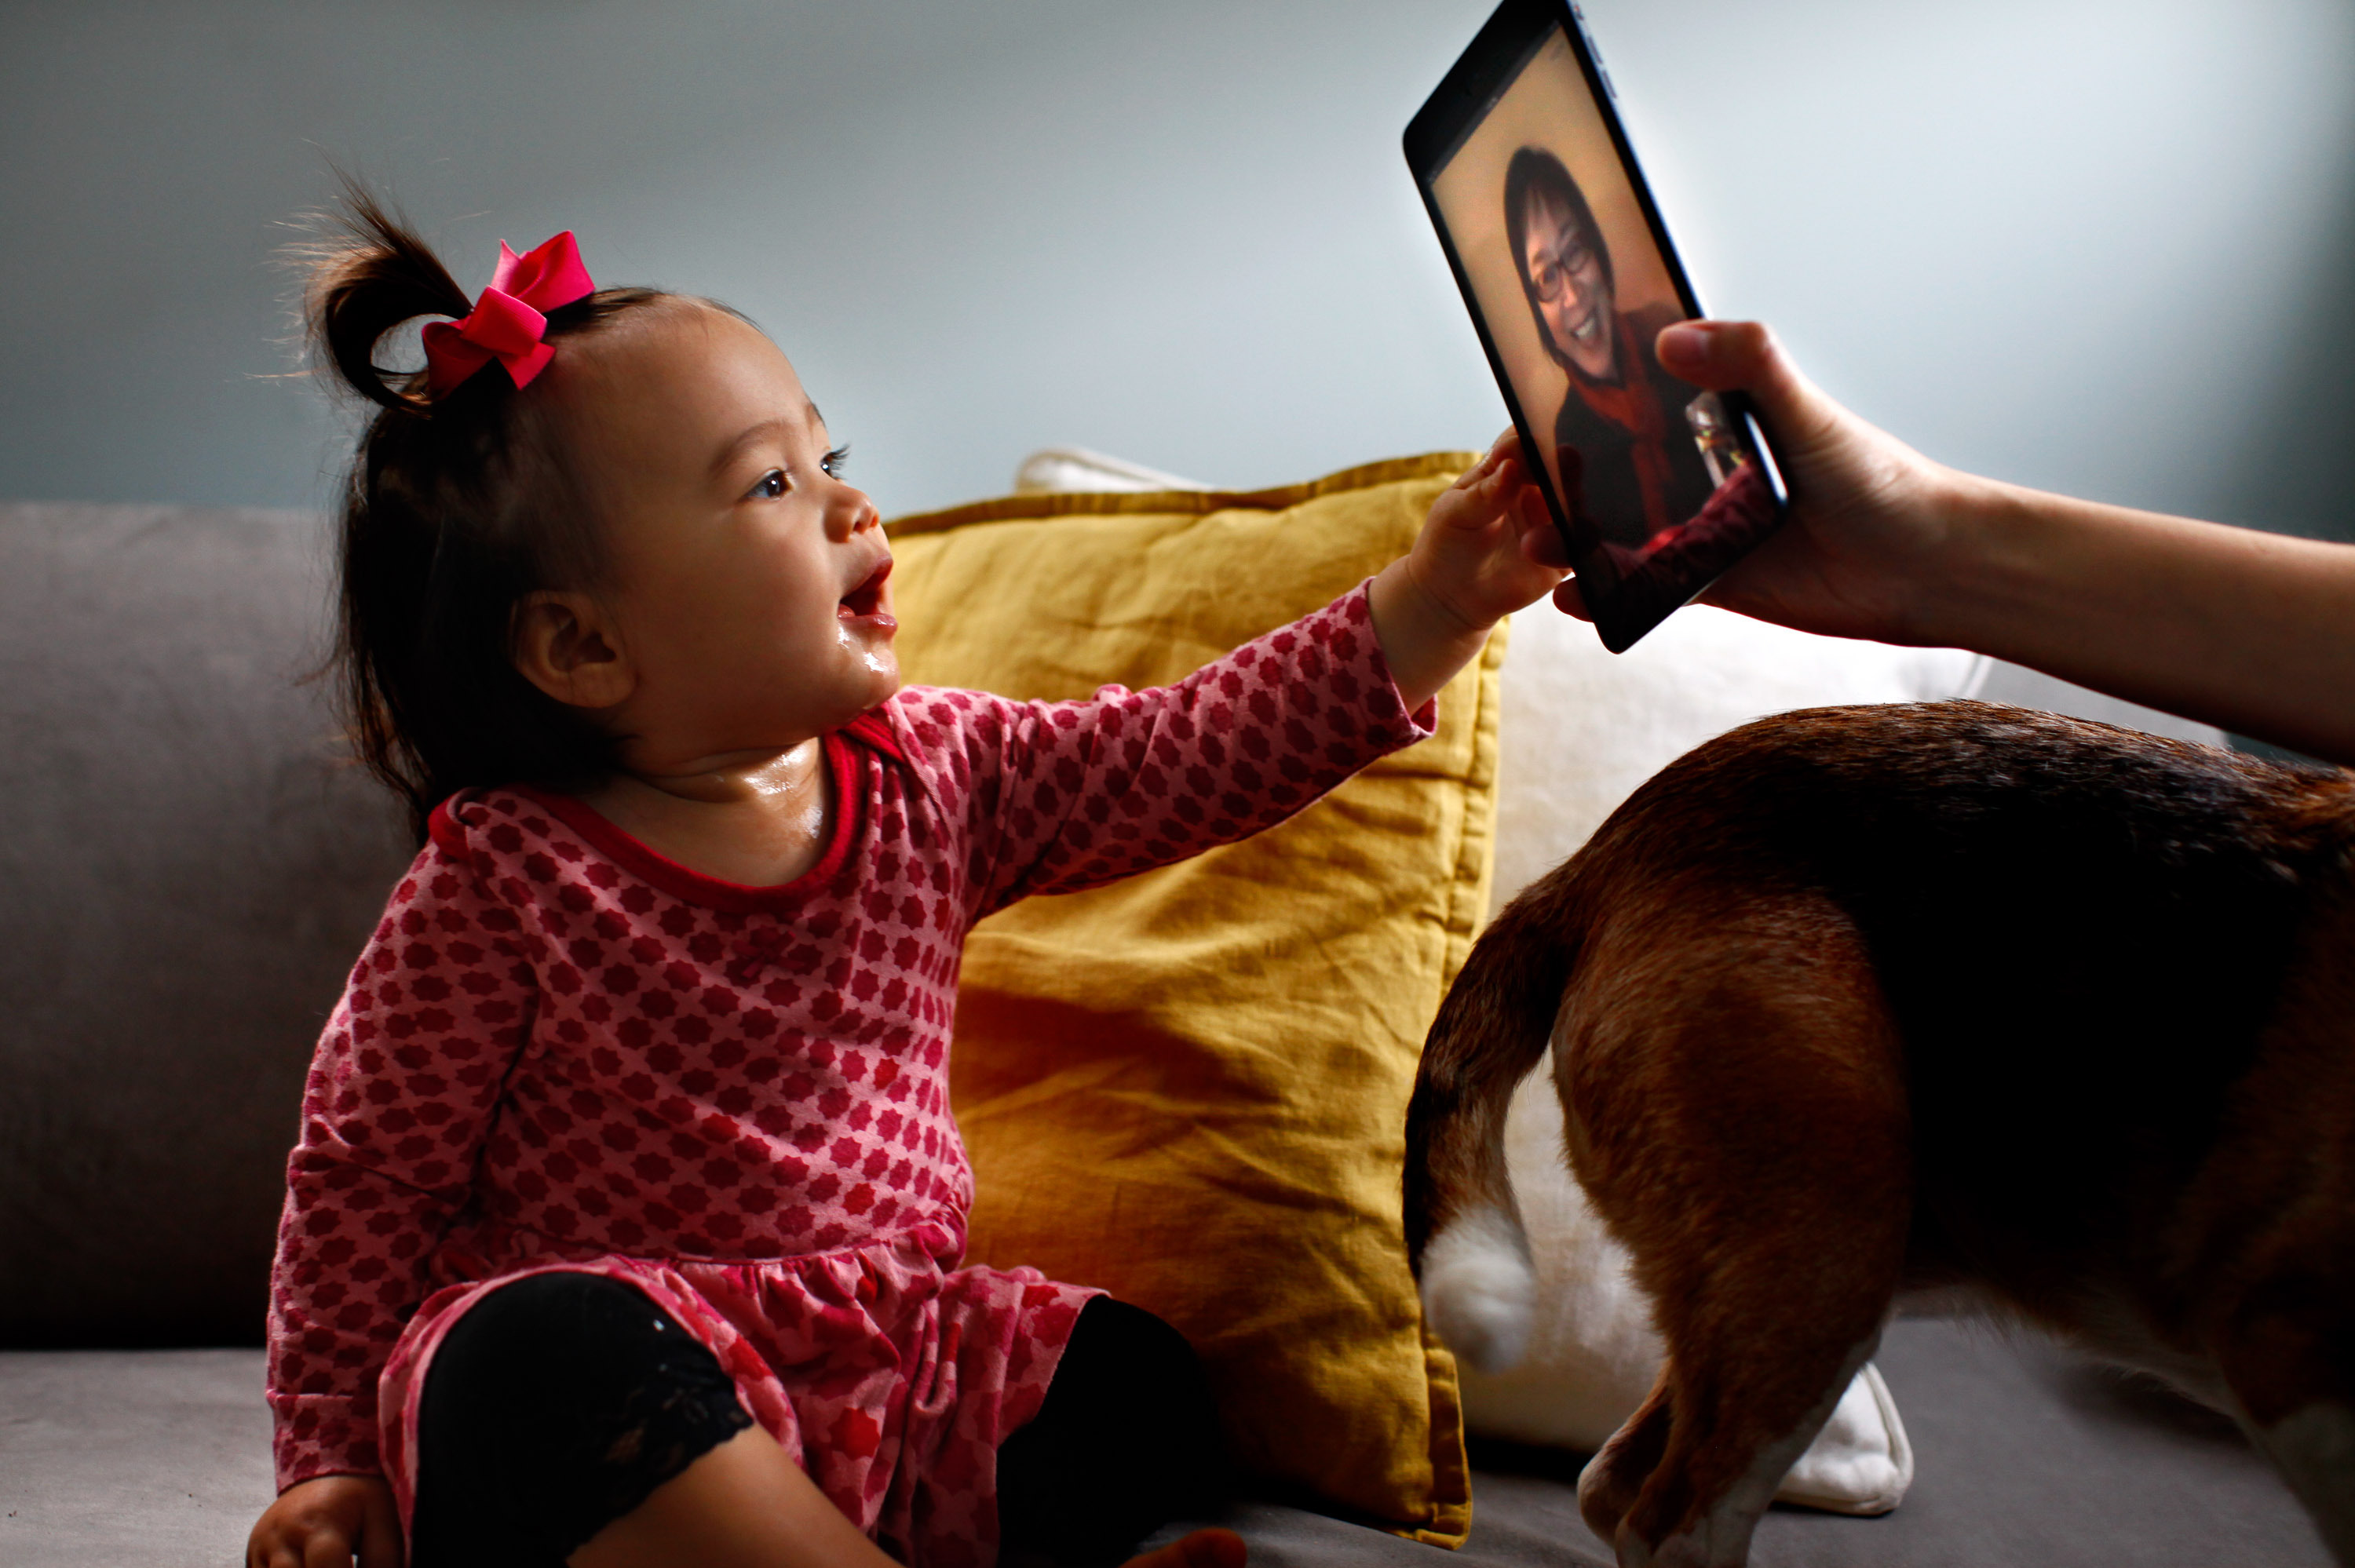 What You Need To Know About Babies, Toddlers And Screen Time